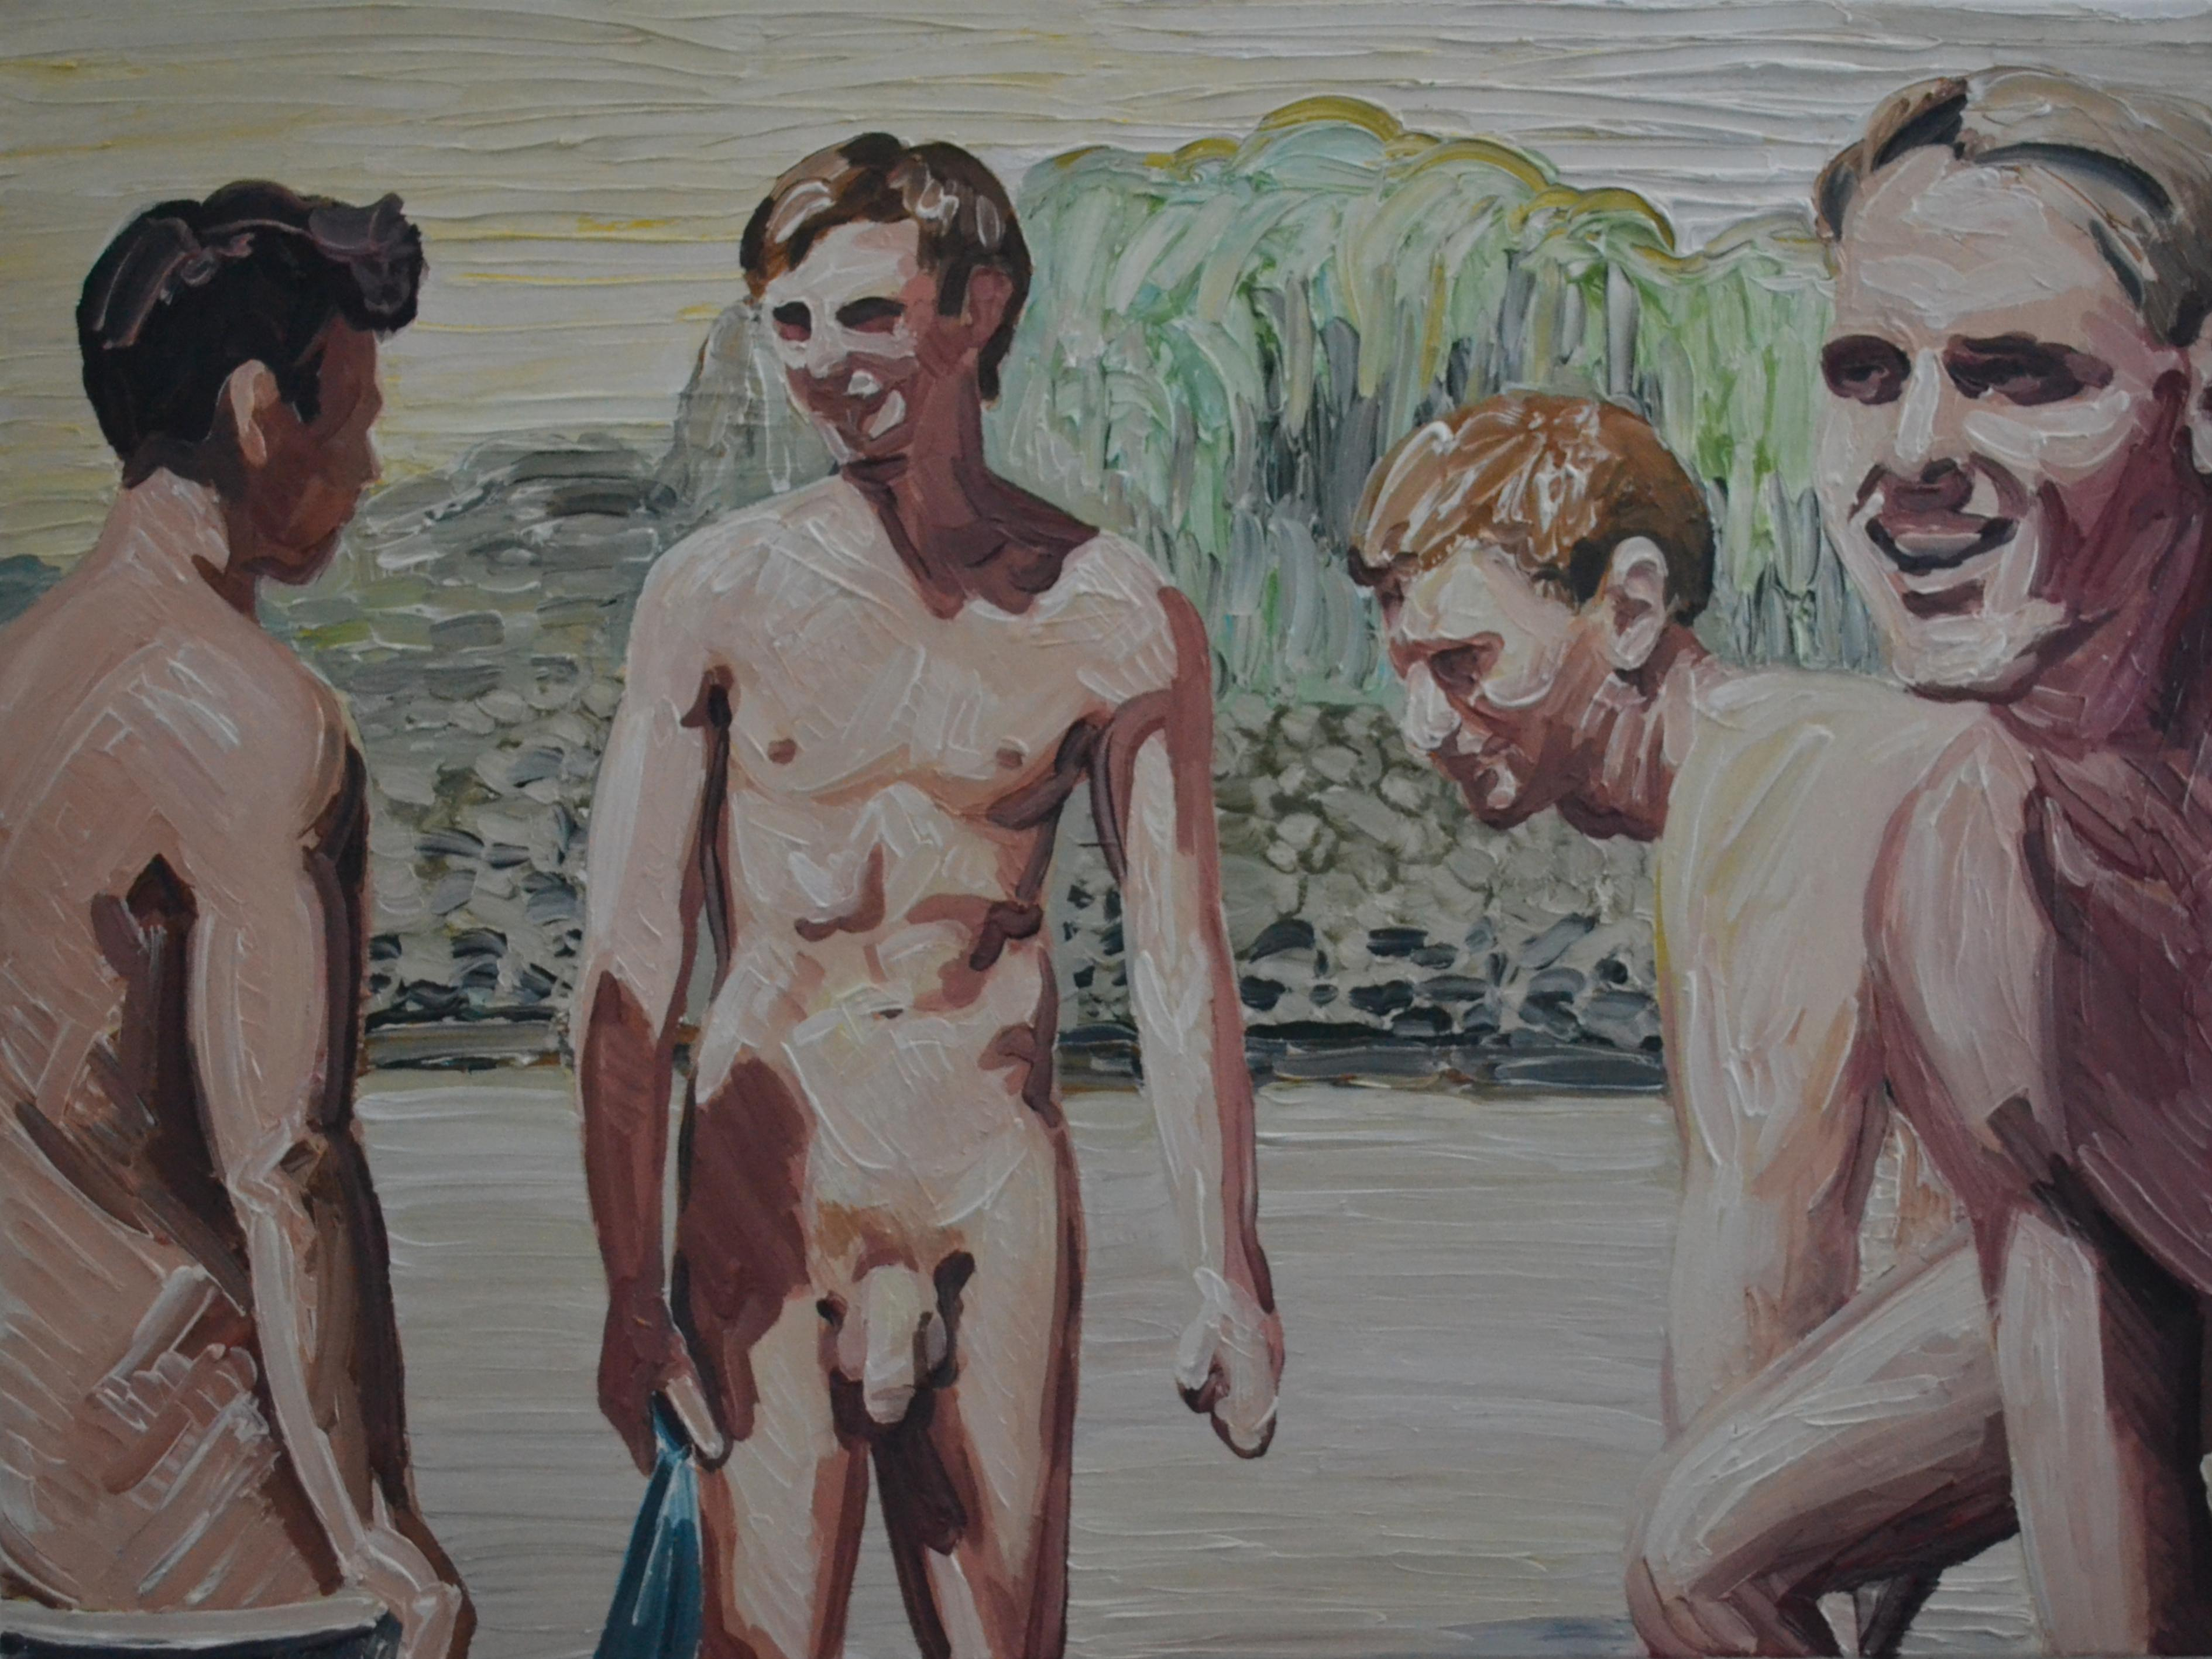 Summer 5 - Contemporary Expressive, Figurative Oil Painting, Male Nude Series